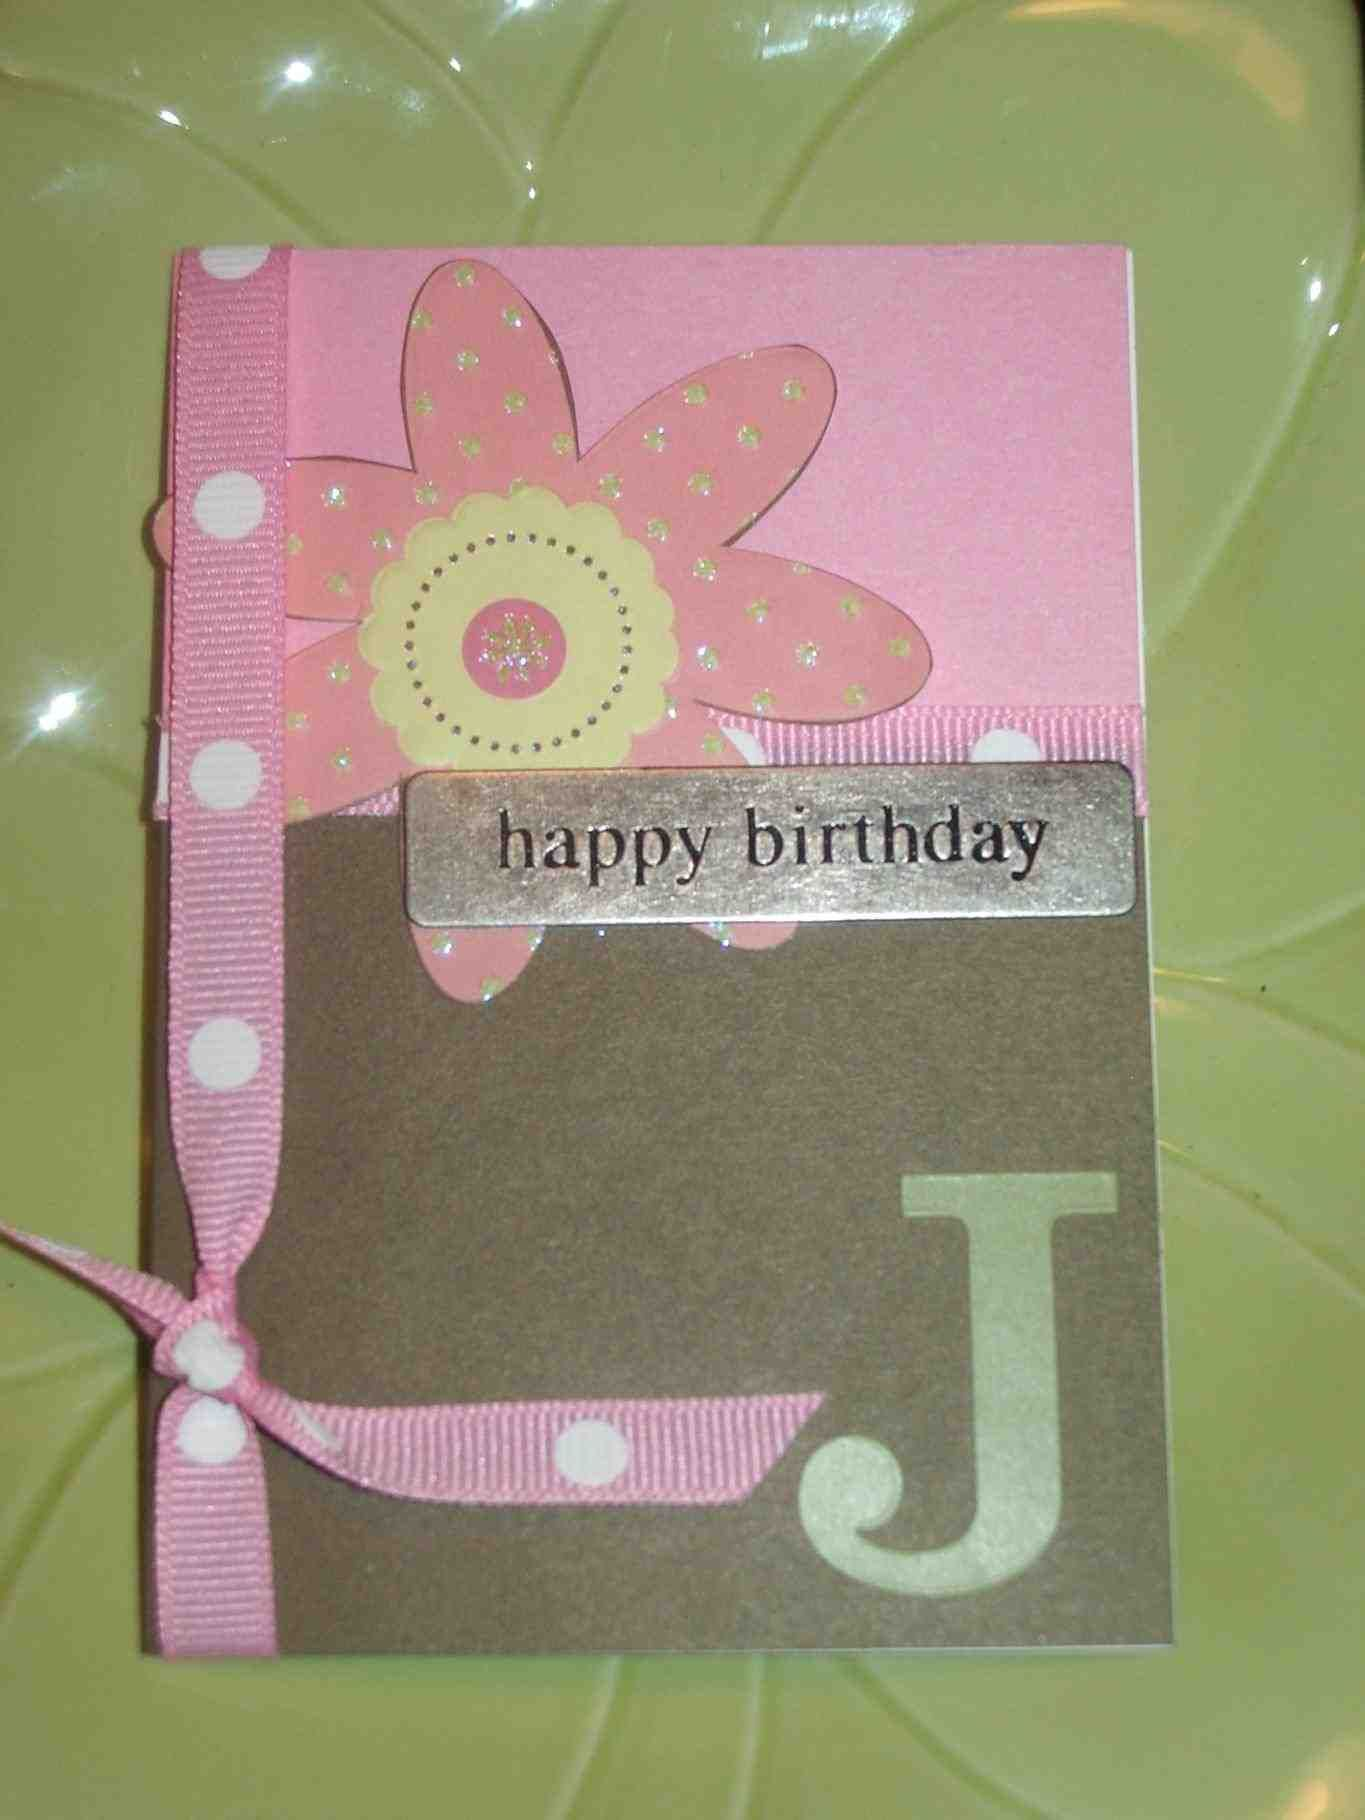 Diy birthday card simple candle with bow make a wish 10 10 different types of handmade greeting cards for birthday 13 diy birthday cards for dad to get ideas how to make m4hsunfo